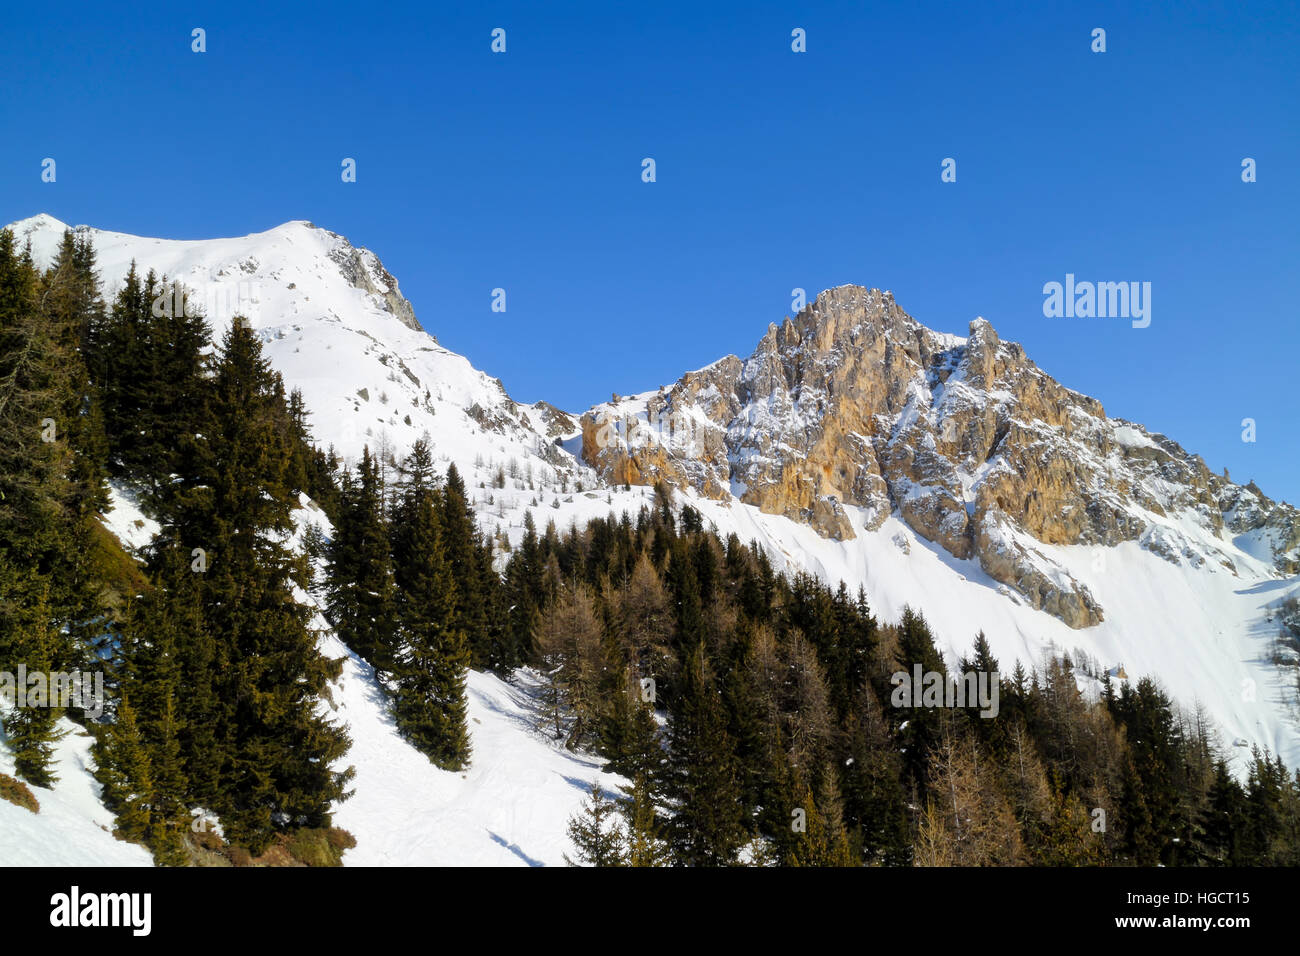 Pine trees on snowy slopes in high mountains on blue sky winter day, Les Arcs, Alps, France - Stock Image